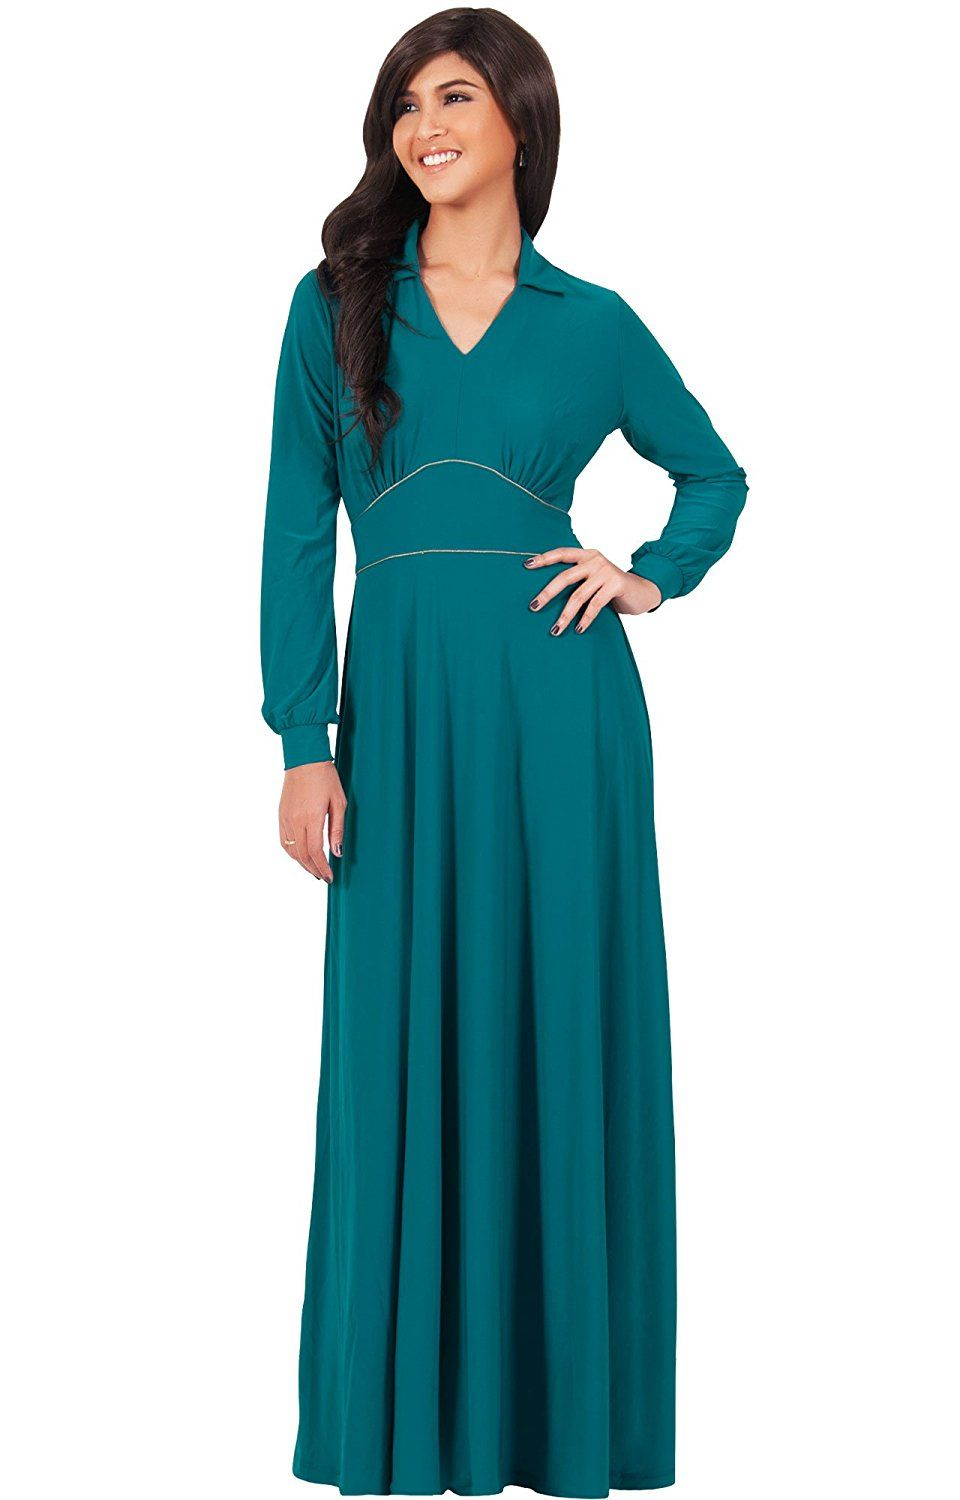 Winter Semi-Formal Maxi Dresses